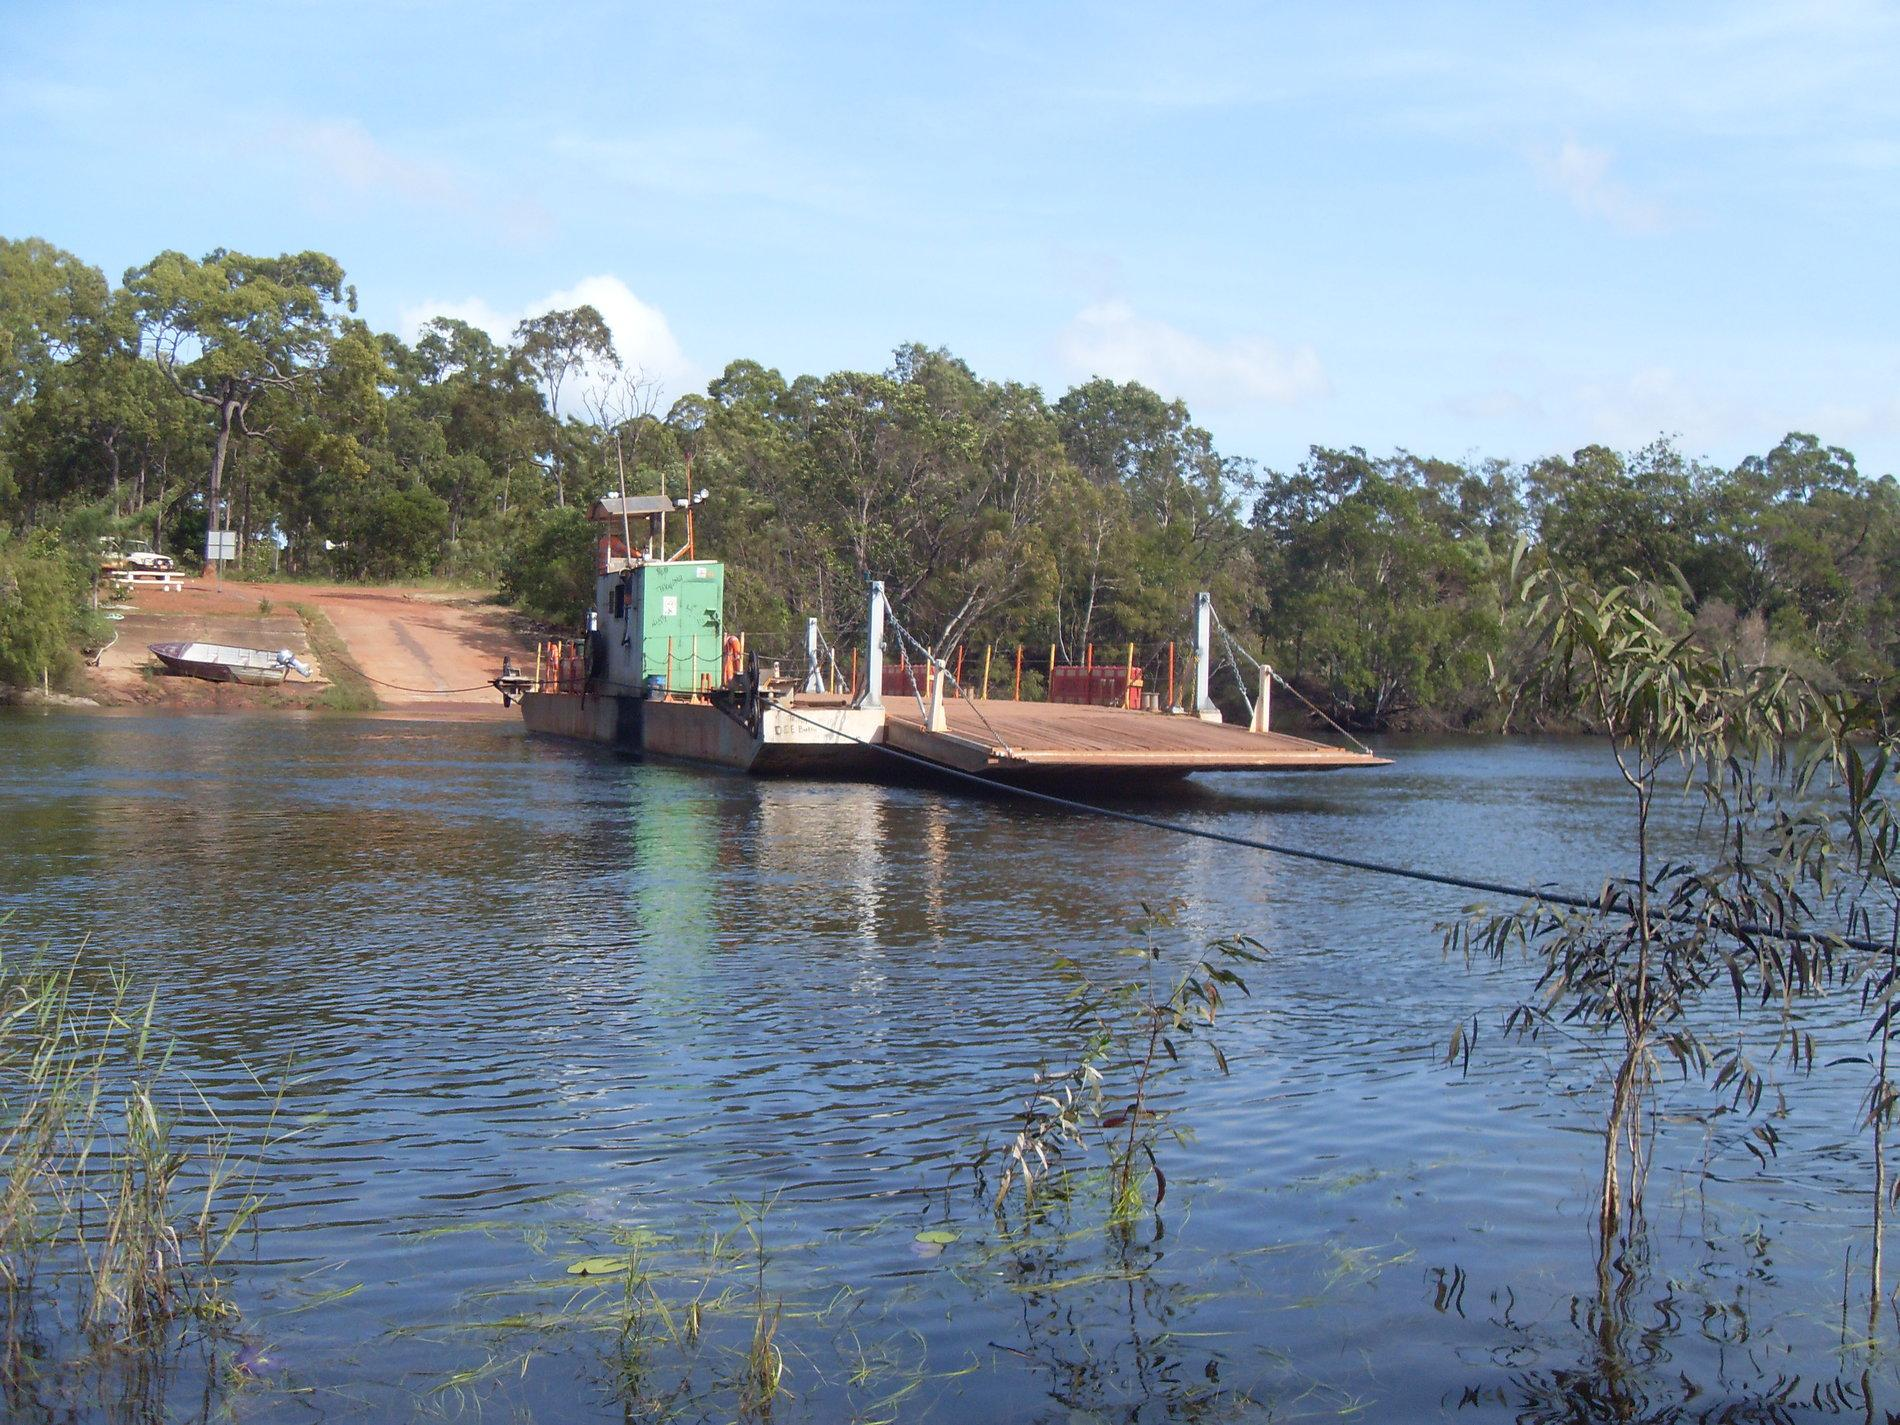 Vehicle Ferry crossing over Jardine River